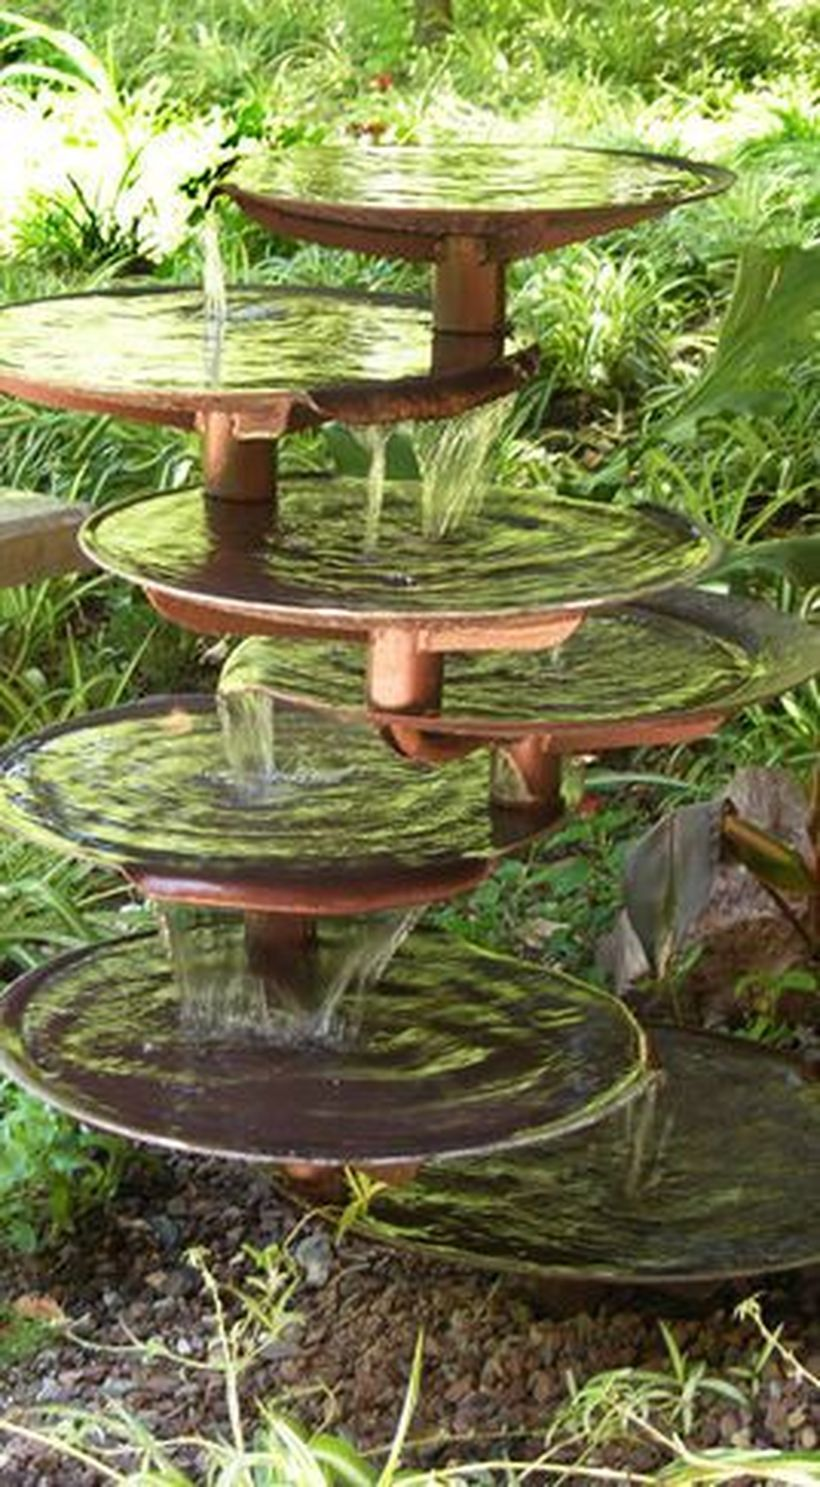 40 Zen Water Fountain Ideas For Garden Landscaping  Https://decomg.com/40 Zen Water Fountain Ideas Garden Landscaping/